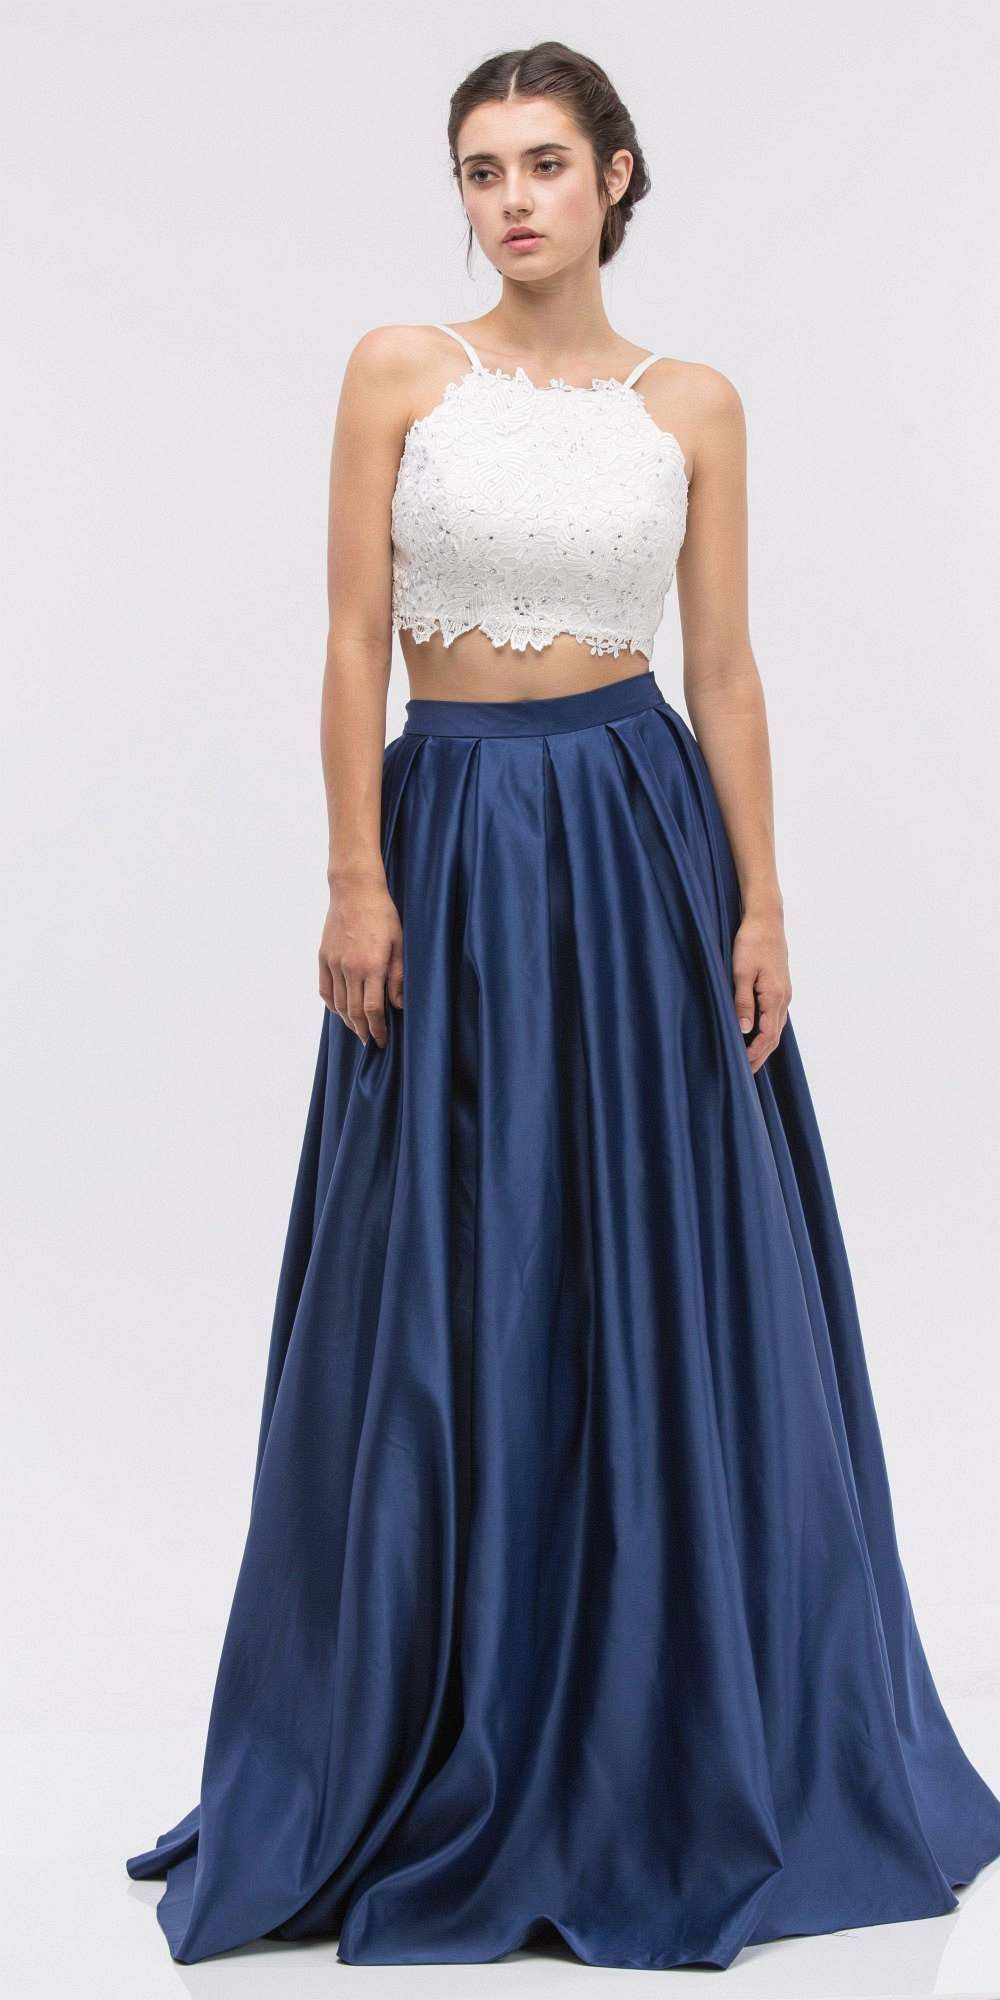 b6f000b921ed75 Two-Piece Long Prom Dress Lace Crop Top and Satin Skirt Navy Blue ...